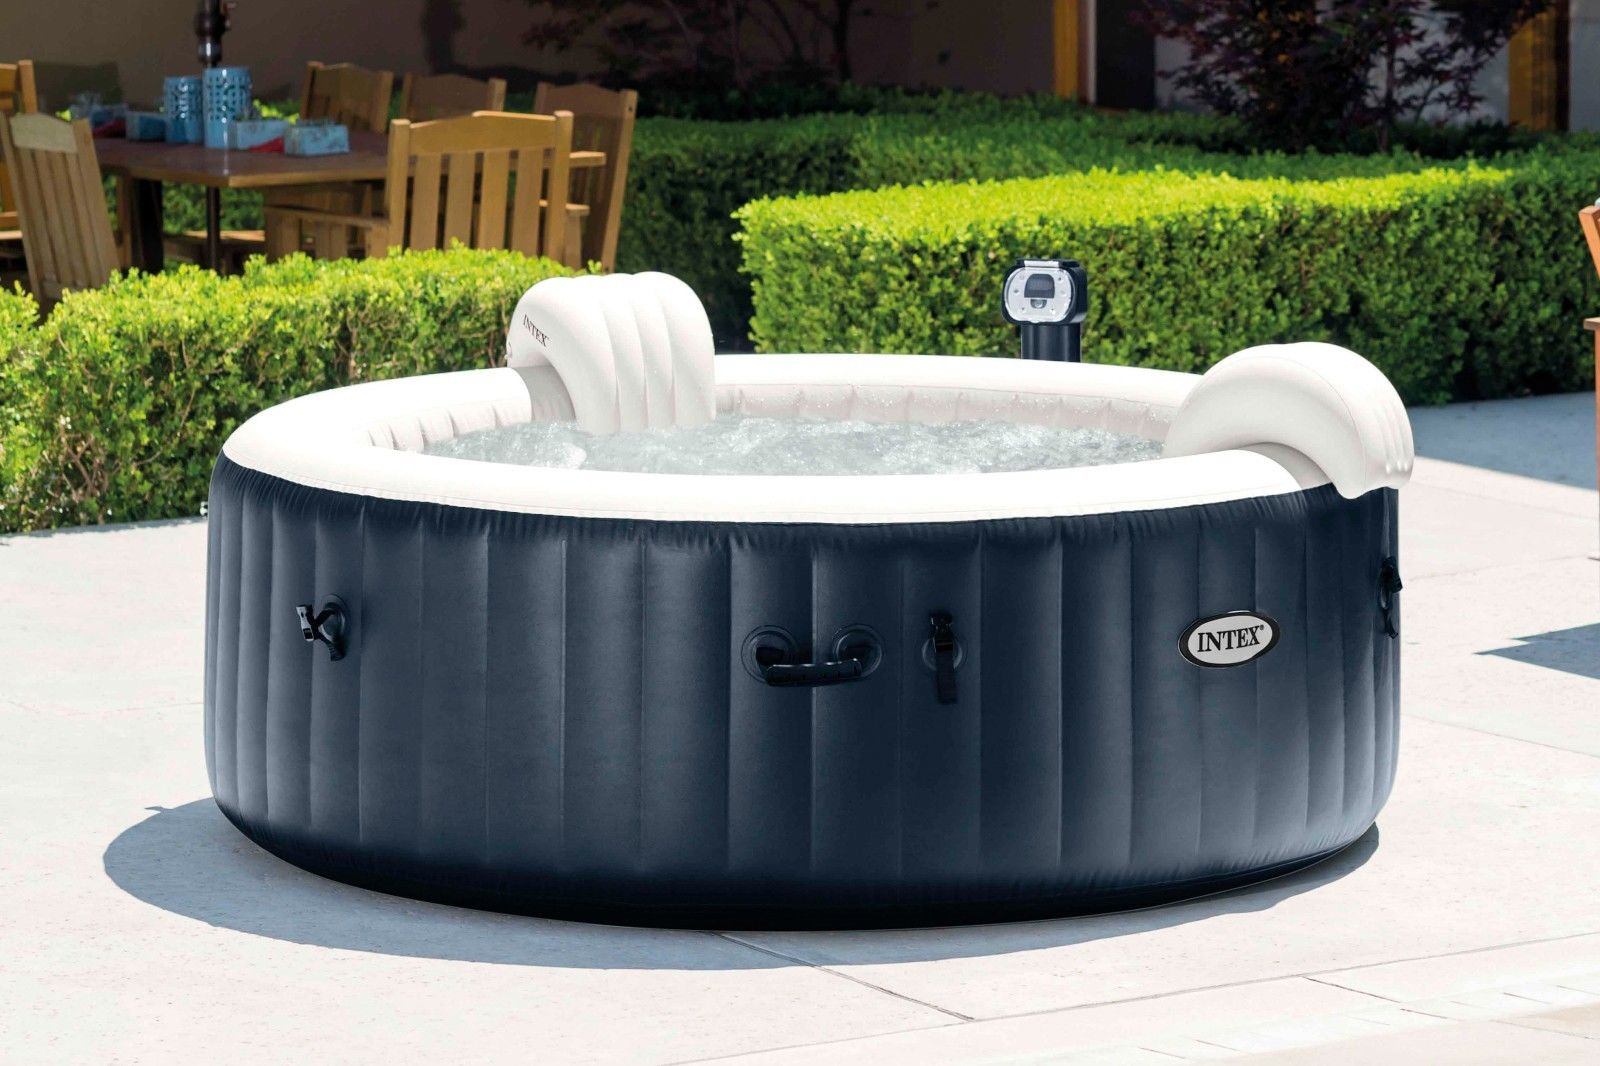 Jacuzzi Pool Hot Tub Intex Pure Spa 4 Person Inflatable Portable Heated Bubble